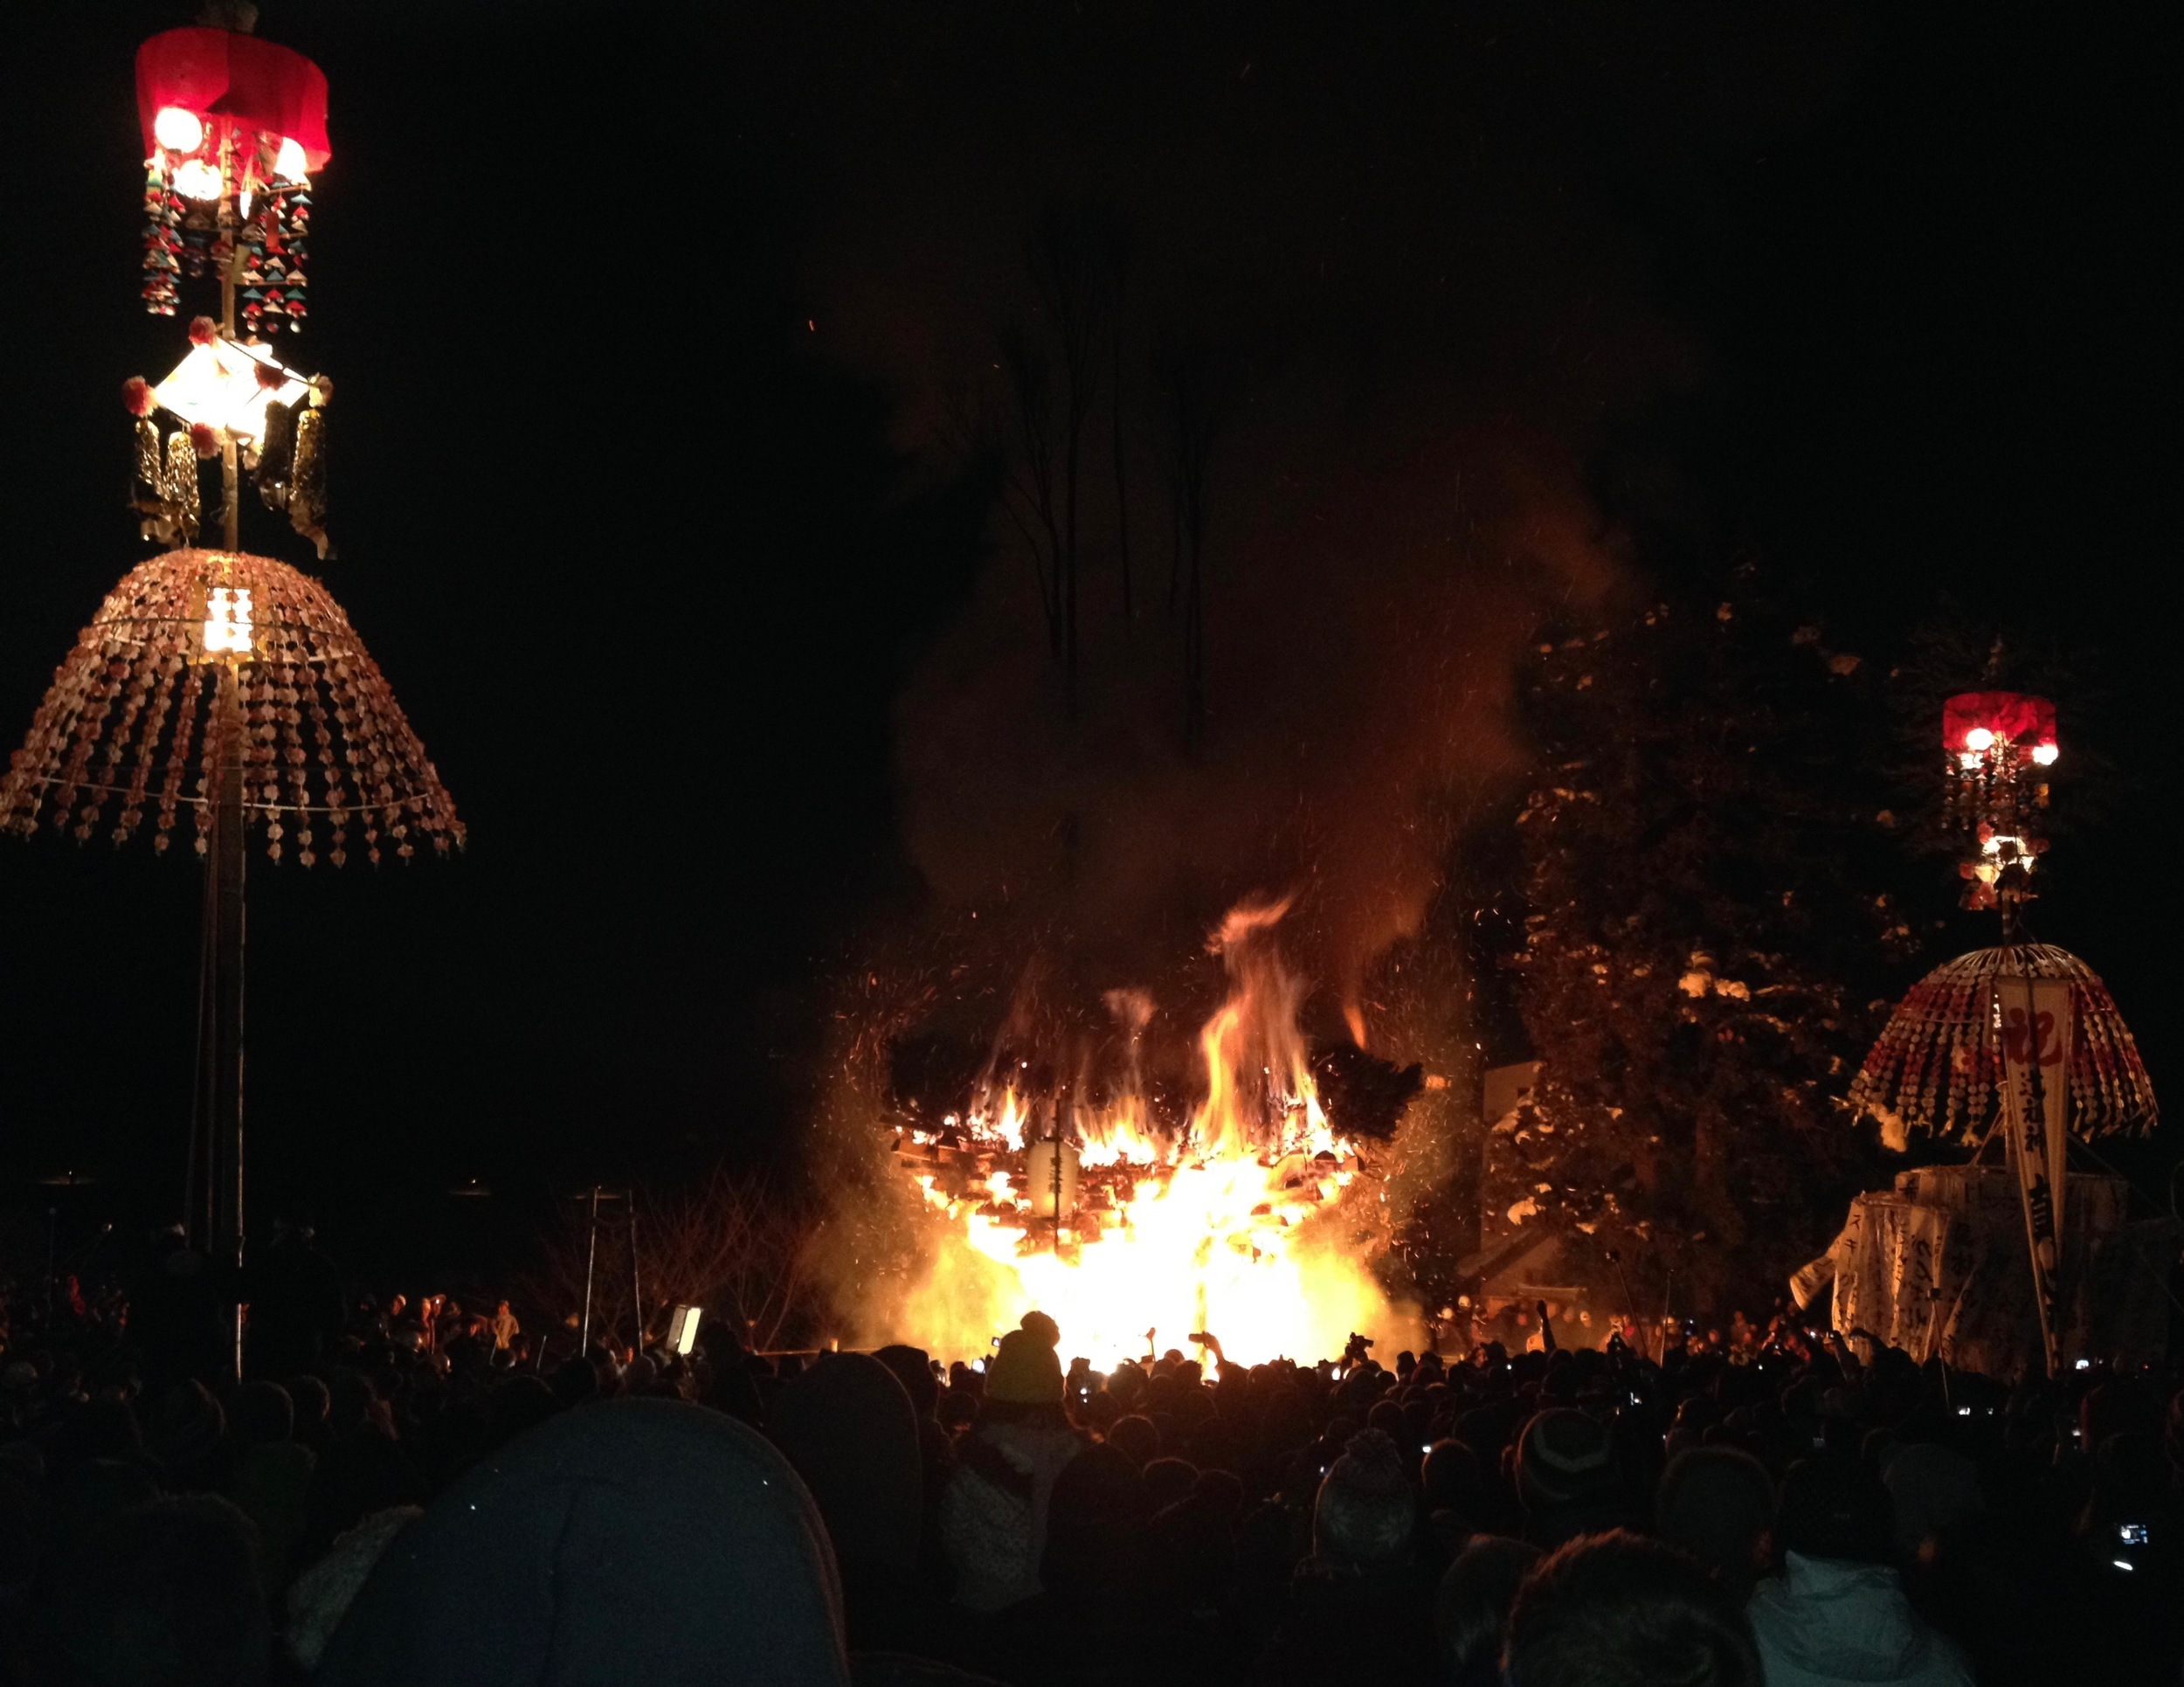 The burning of the structure at the Nosawa Fire Festival